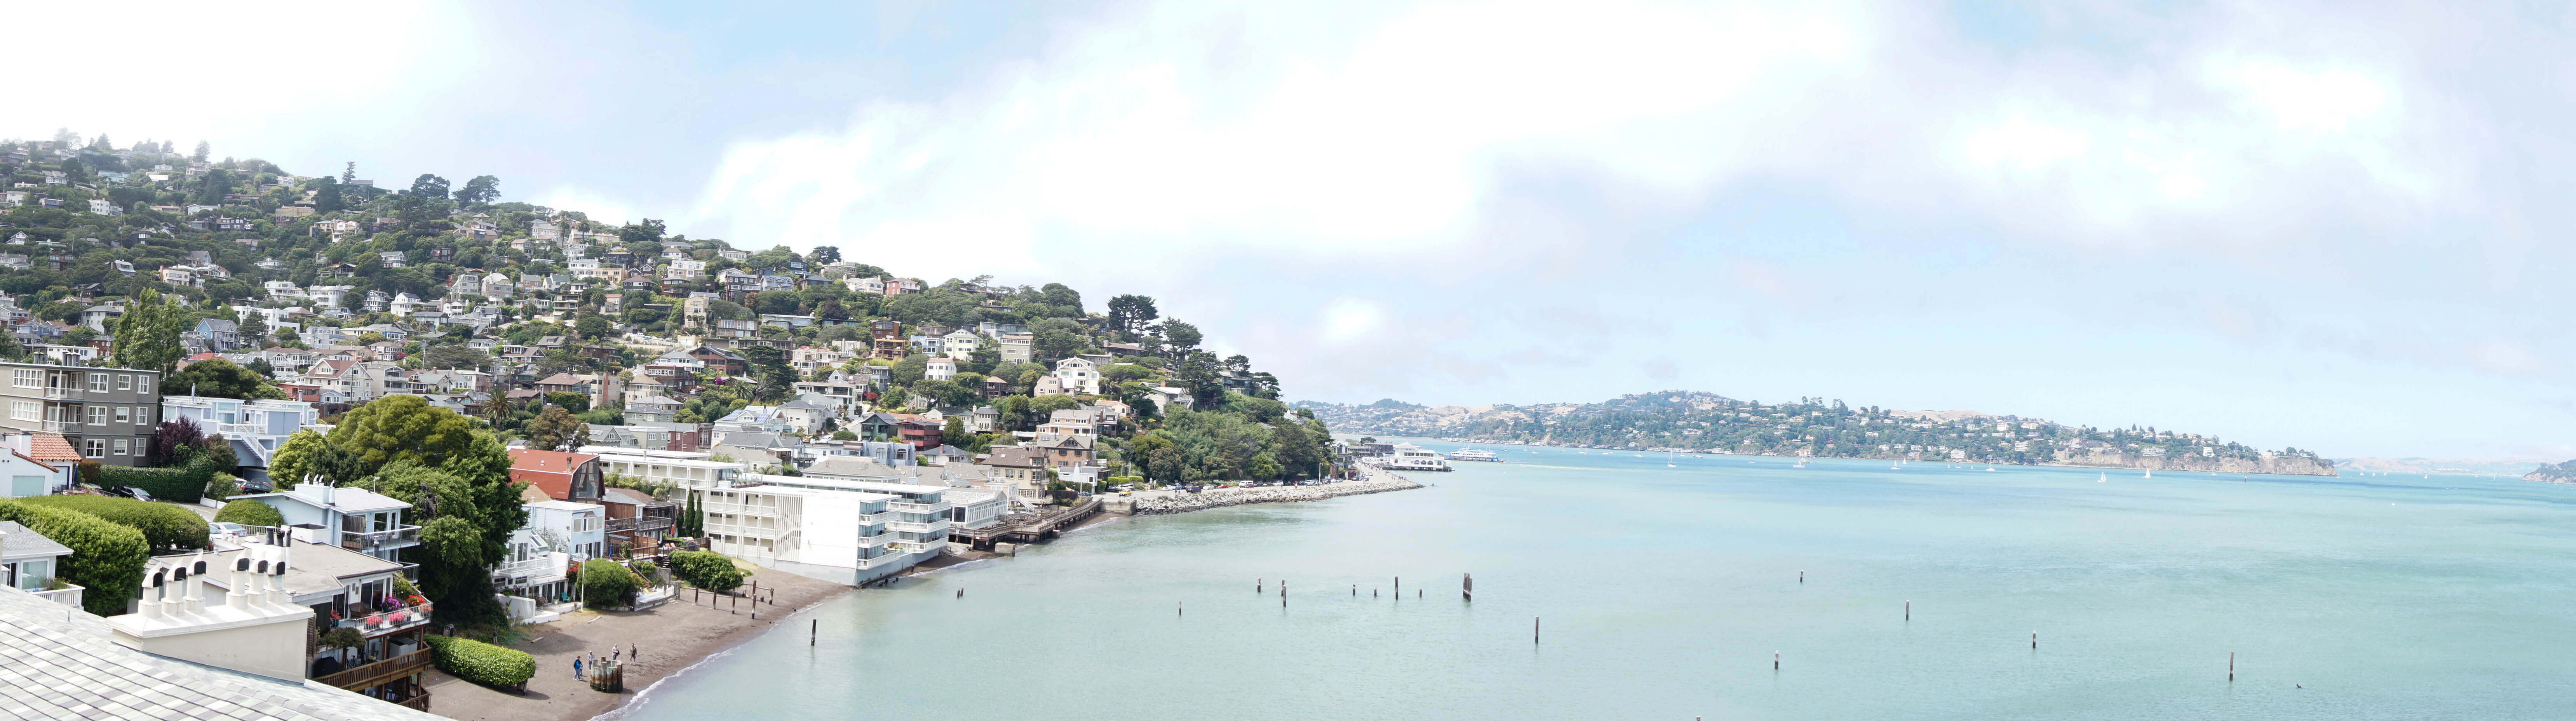 If you didn't have wanderlust before, you will now. This trip to San Francisco is a dream!